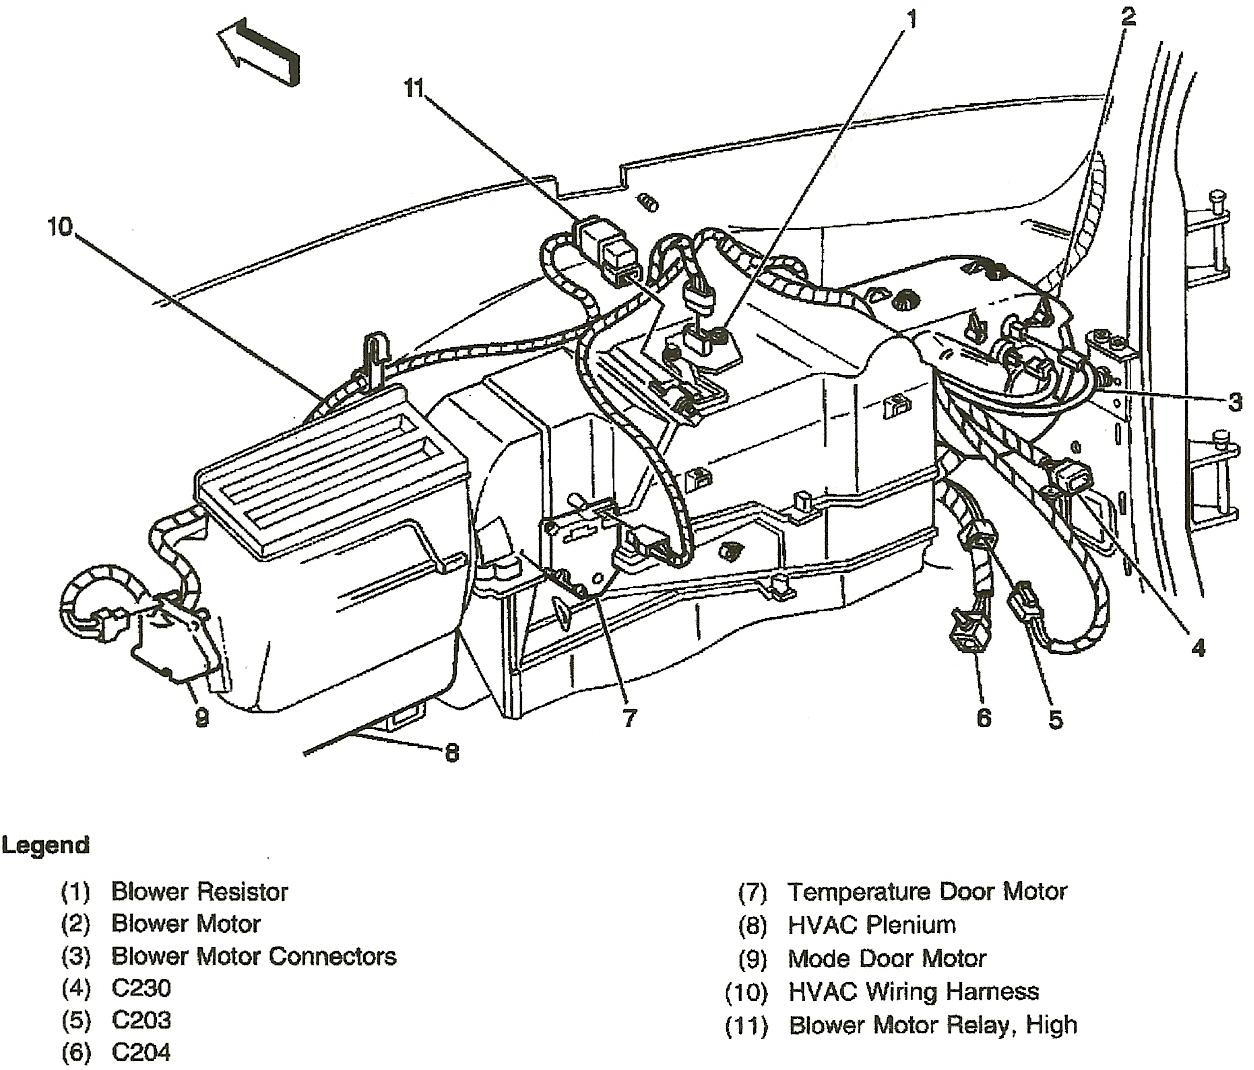 1999 chevrolet suburban blower motor 4 how to test a chevy suburban blower motor my pro street 2003 chevy silverado blower motor resistor wiring diagram at edmiracle.co